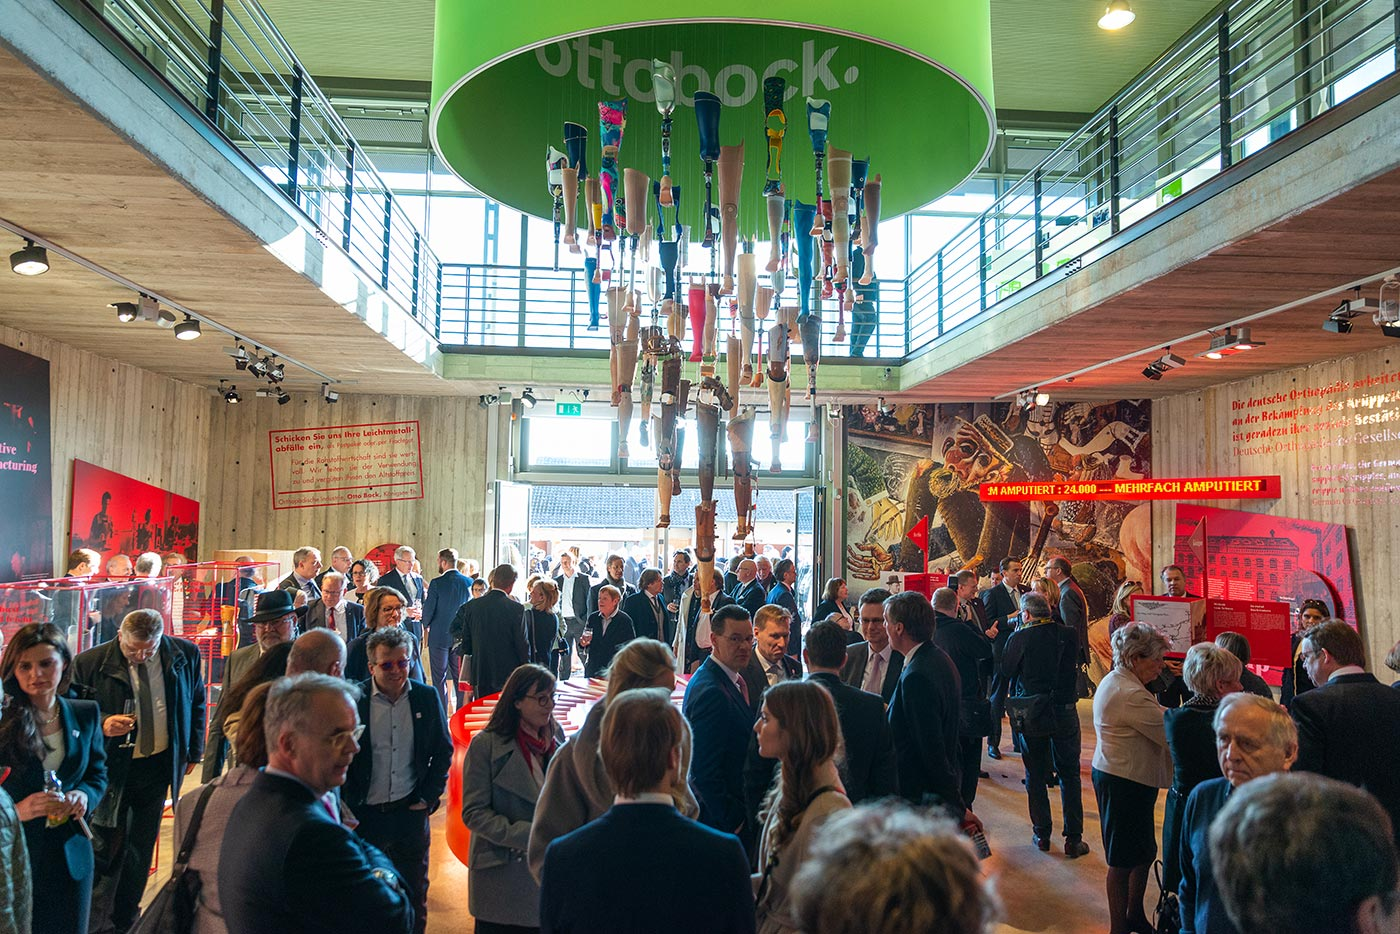 Ottobock's 100-year history 01: Exhibition opening on the occasion of the 100th anniversary of Ottobock